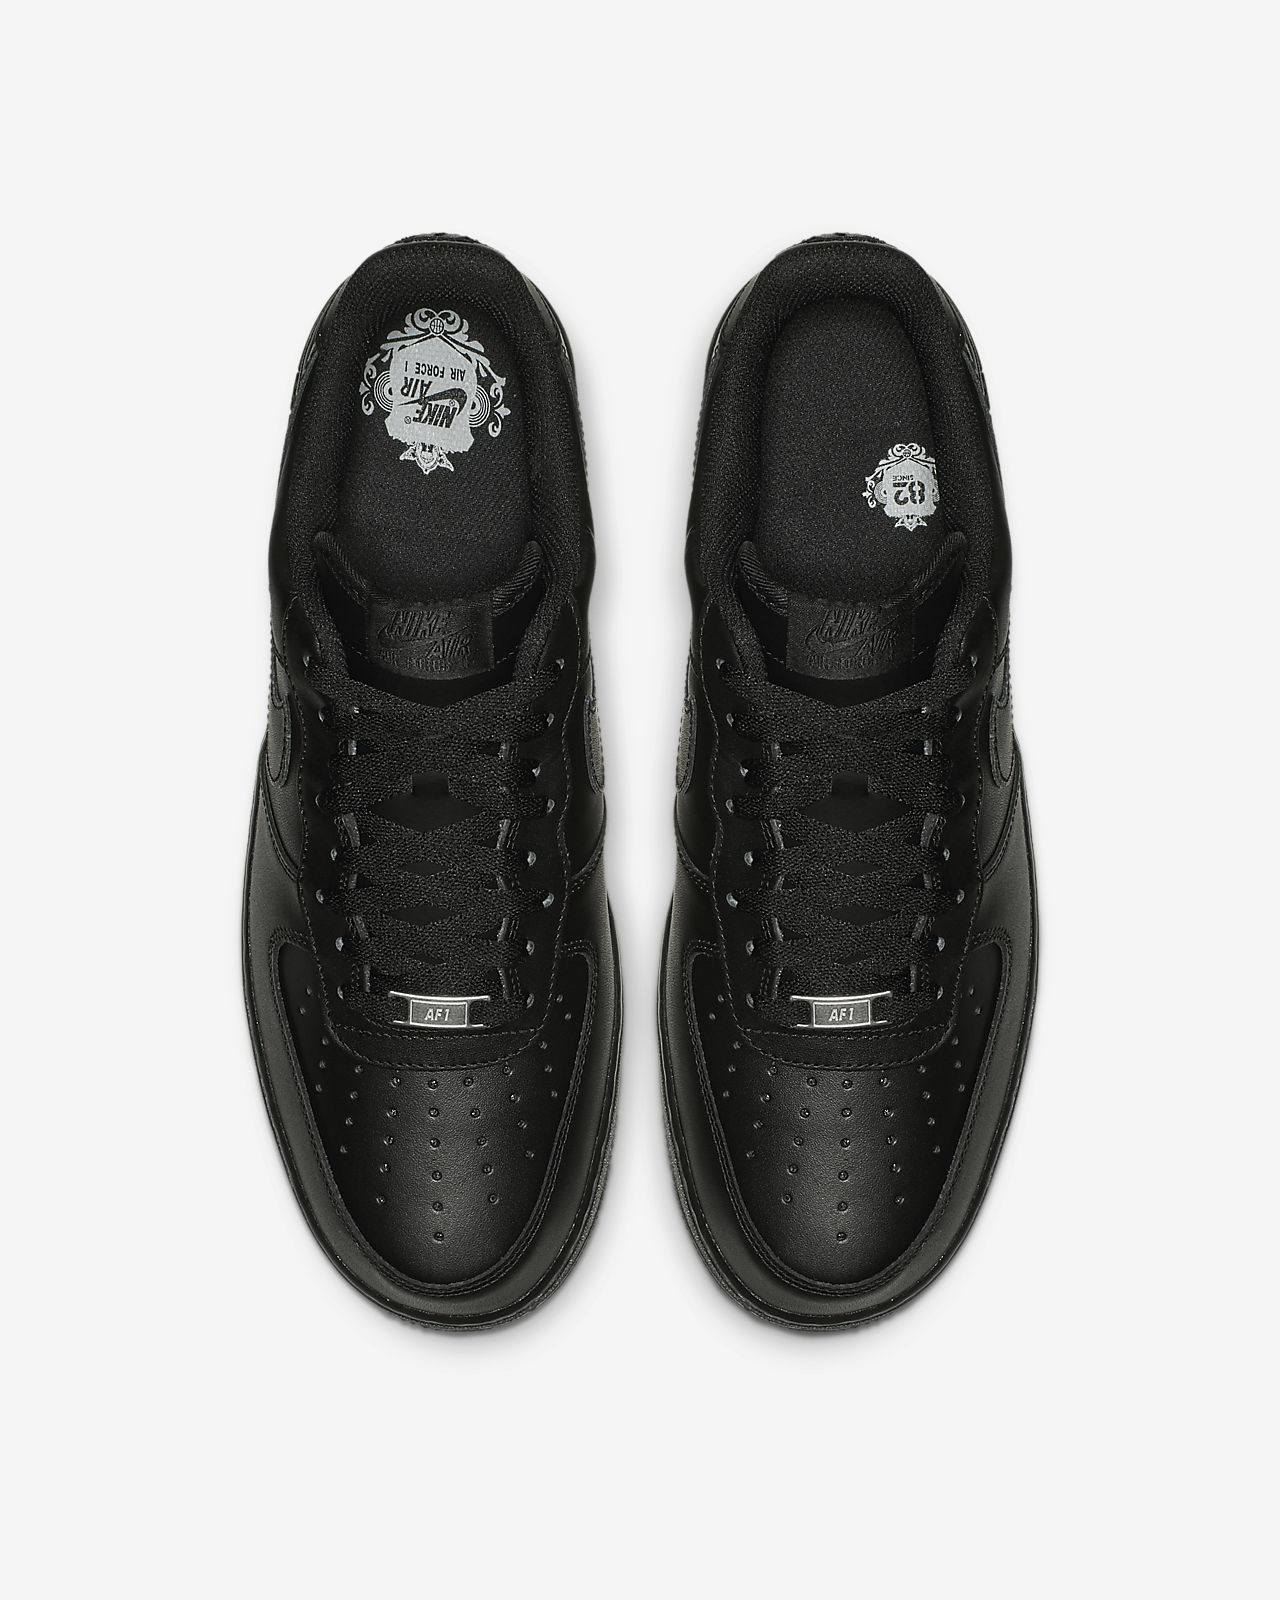 nike air force 1 07 men's shoe nz